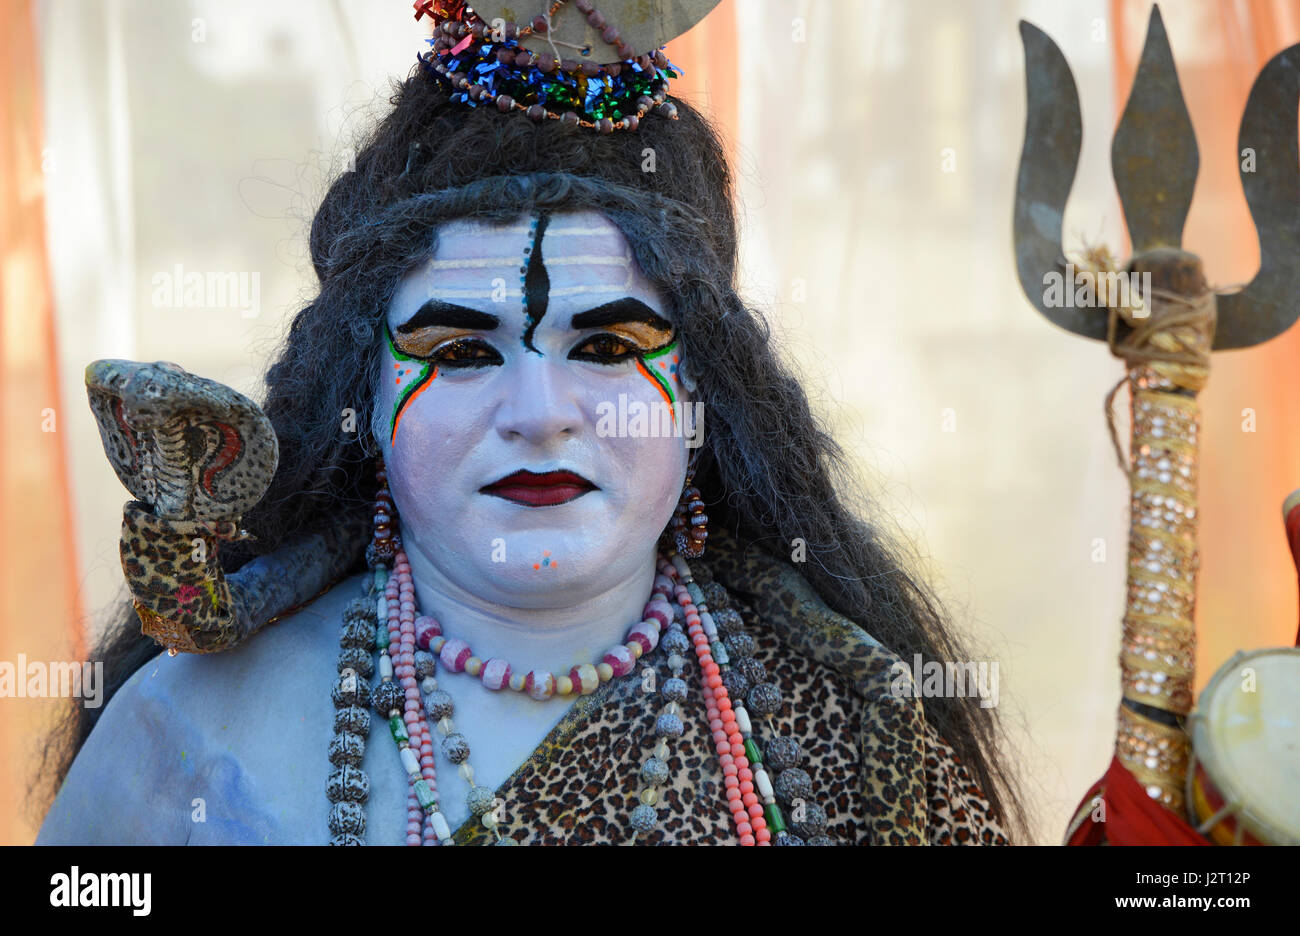 Indian man with lord shiva Costume  sc 1 st  Alamy & Indian man with lord shiva Costume Stock Photo: 139439966 - Alamy